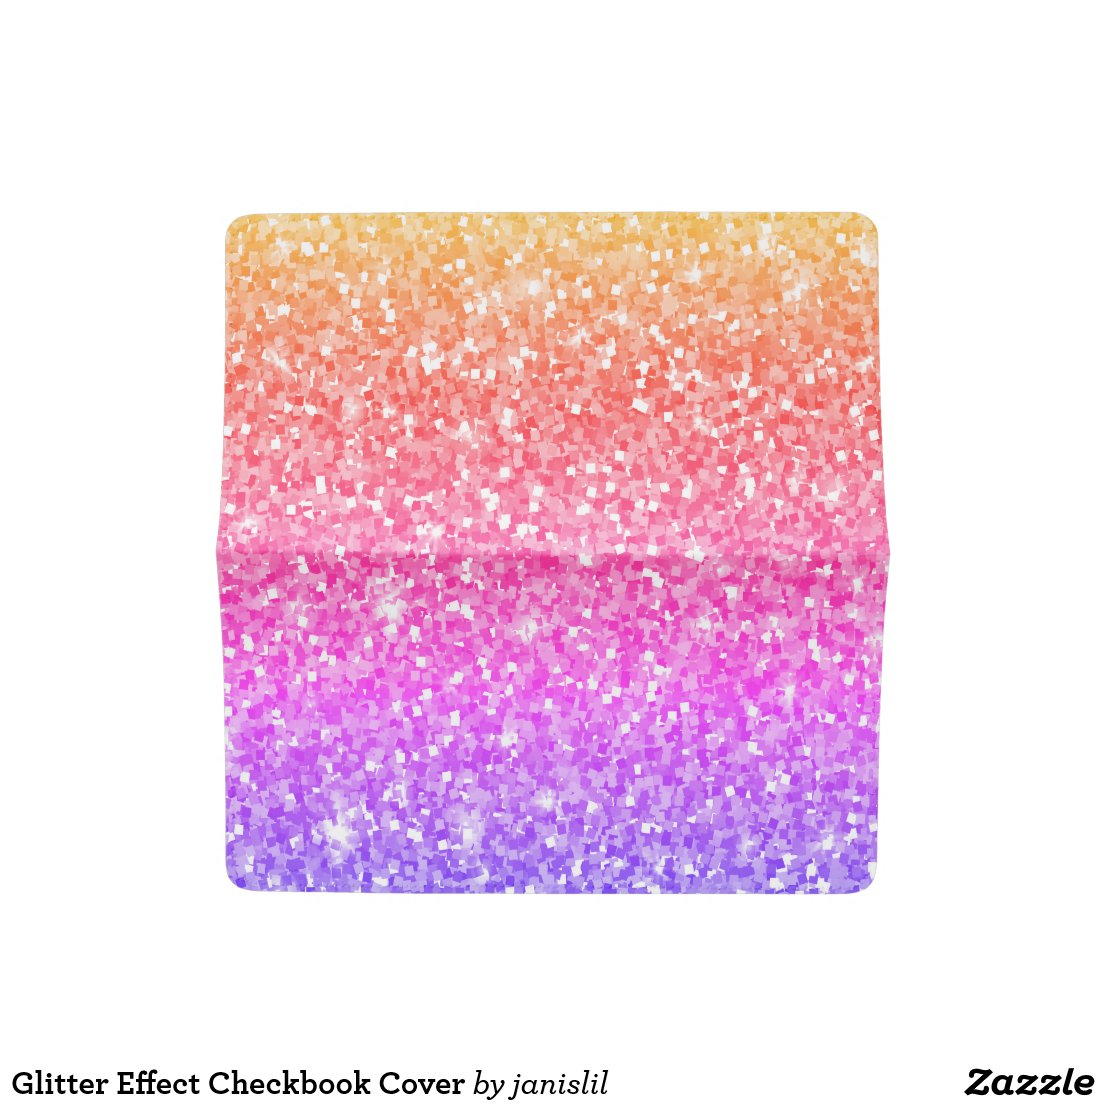 Glitter Effect Checkbook Cover